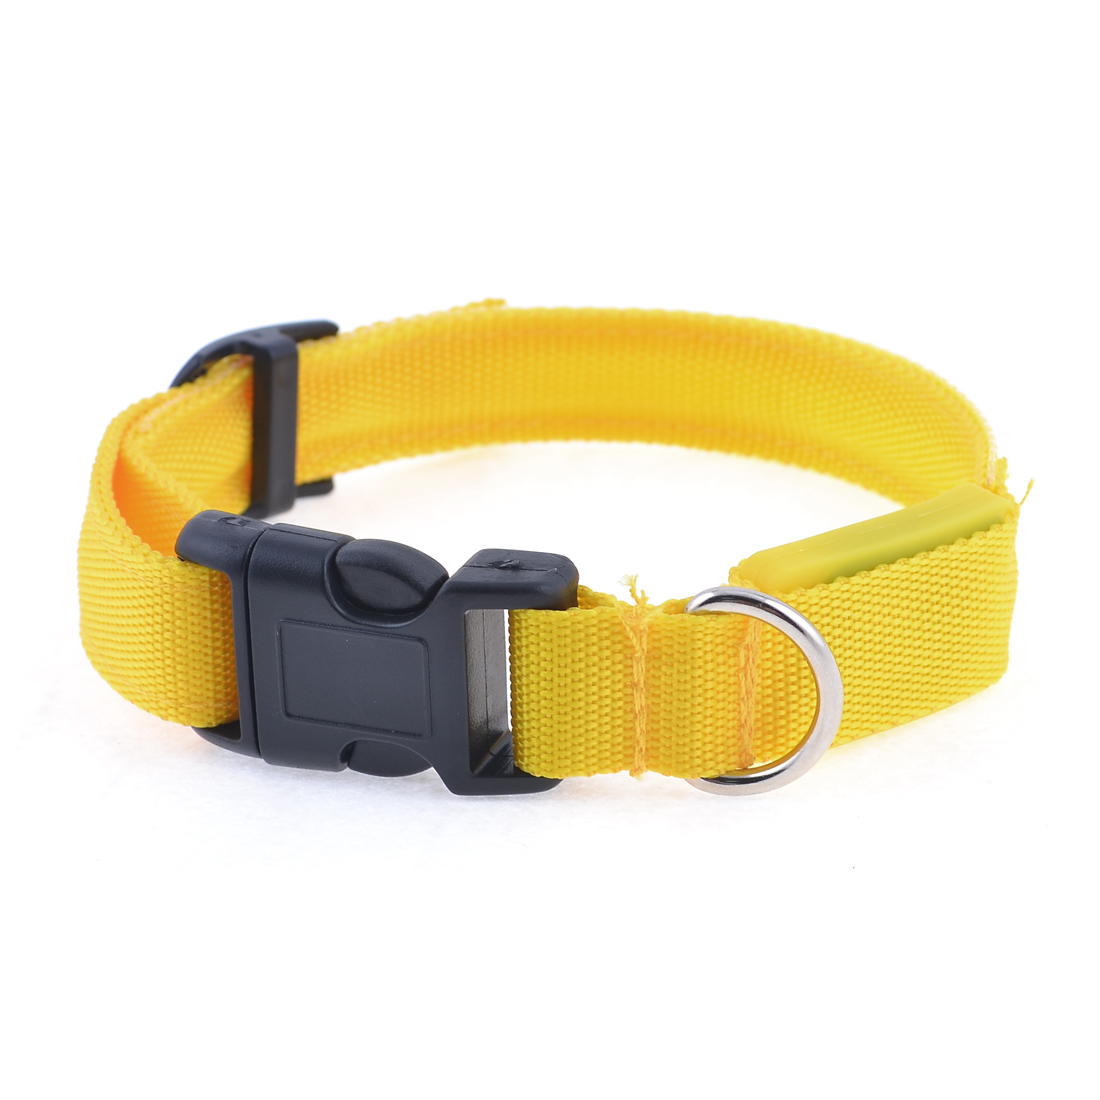 Release Buckle Yellow LED Flash Light Leash Rope Strap for Puppy Dog Pet